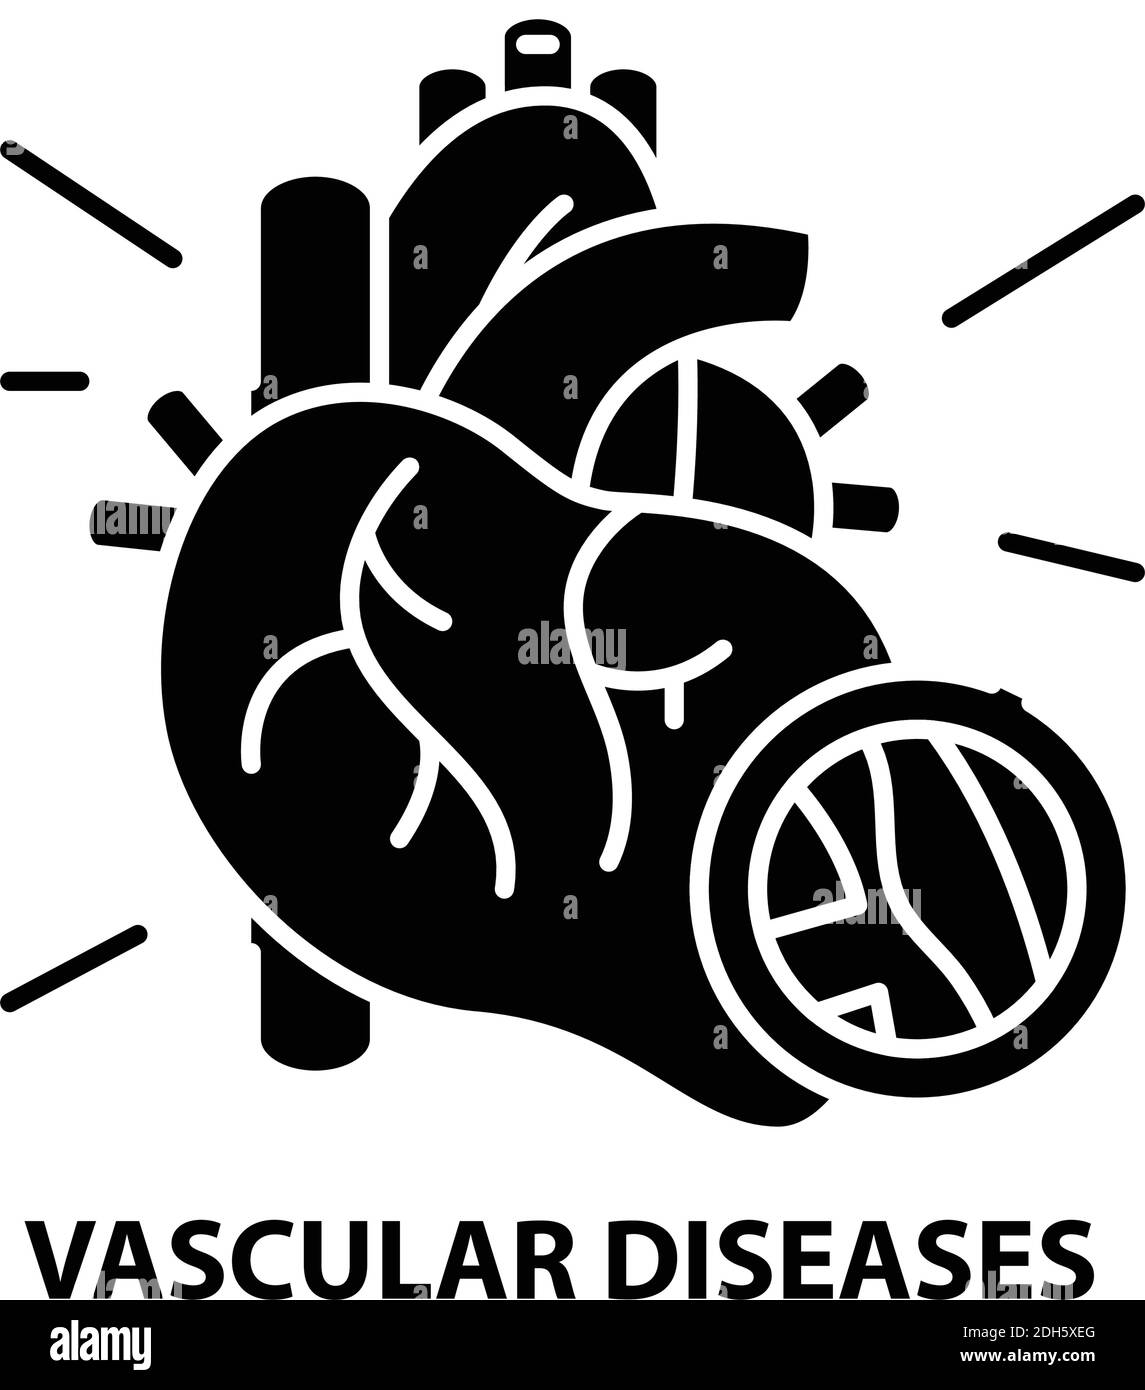 vascular diseases icon, black vector sign with editable strokes, concept illustration Stock Vector